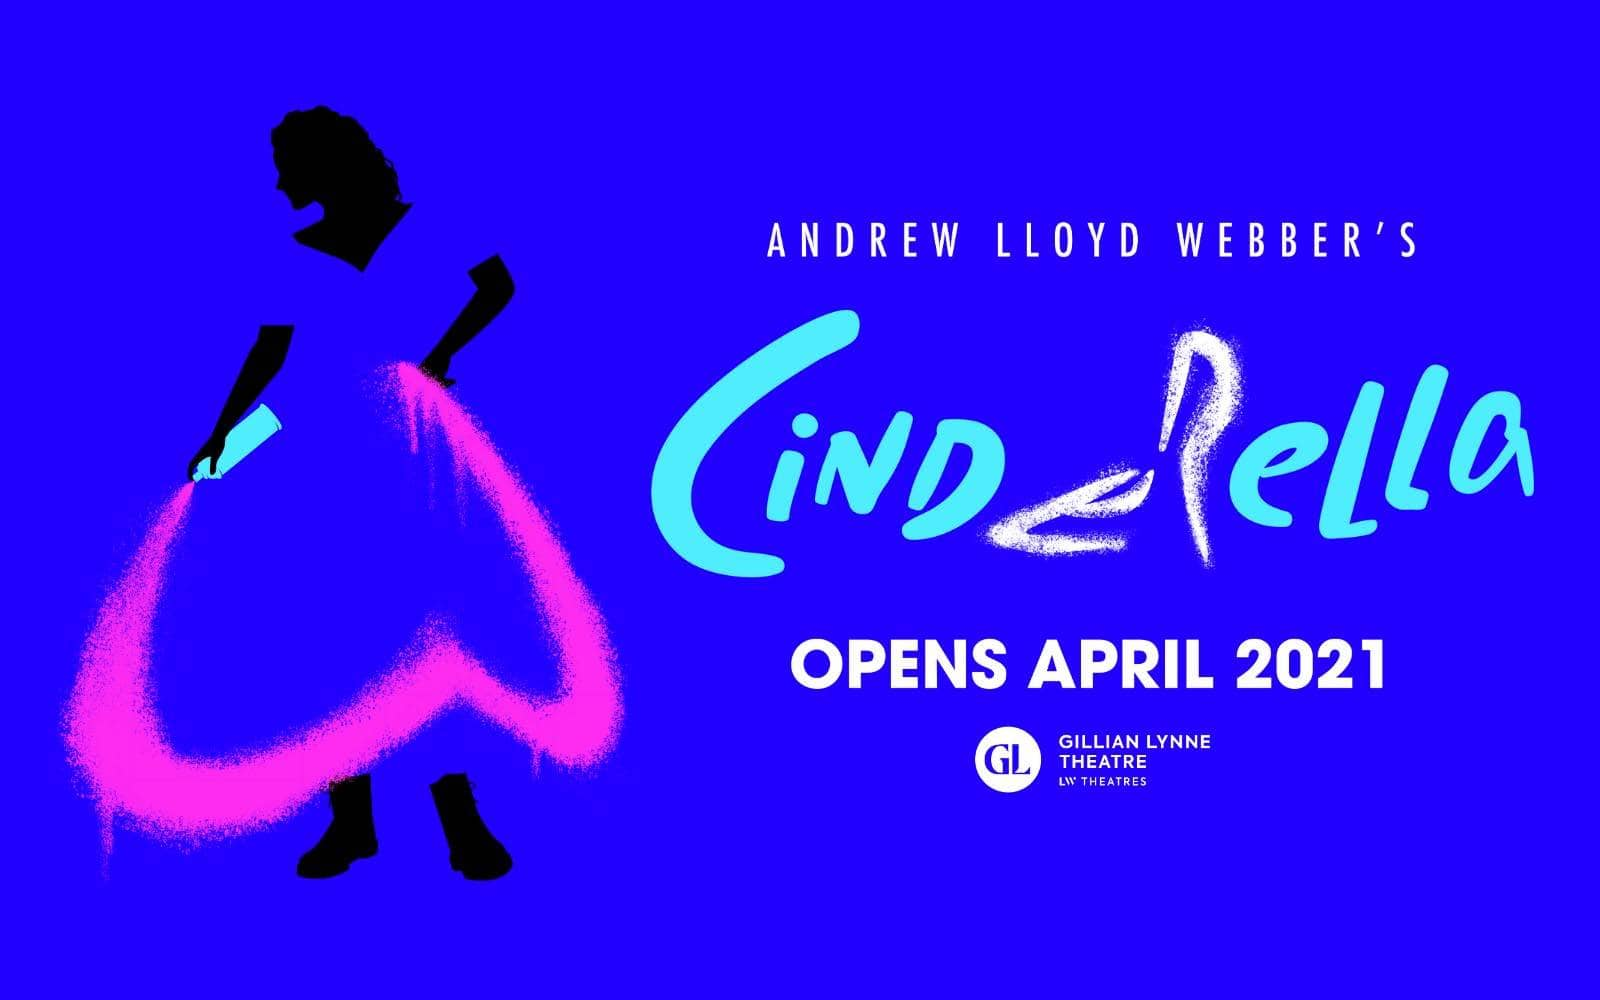 Poster for Andrew Lloyd Webber's Cinderella The Musical.